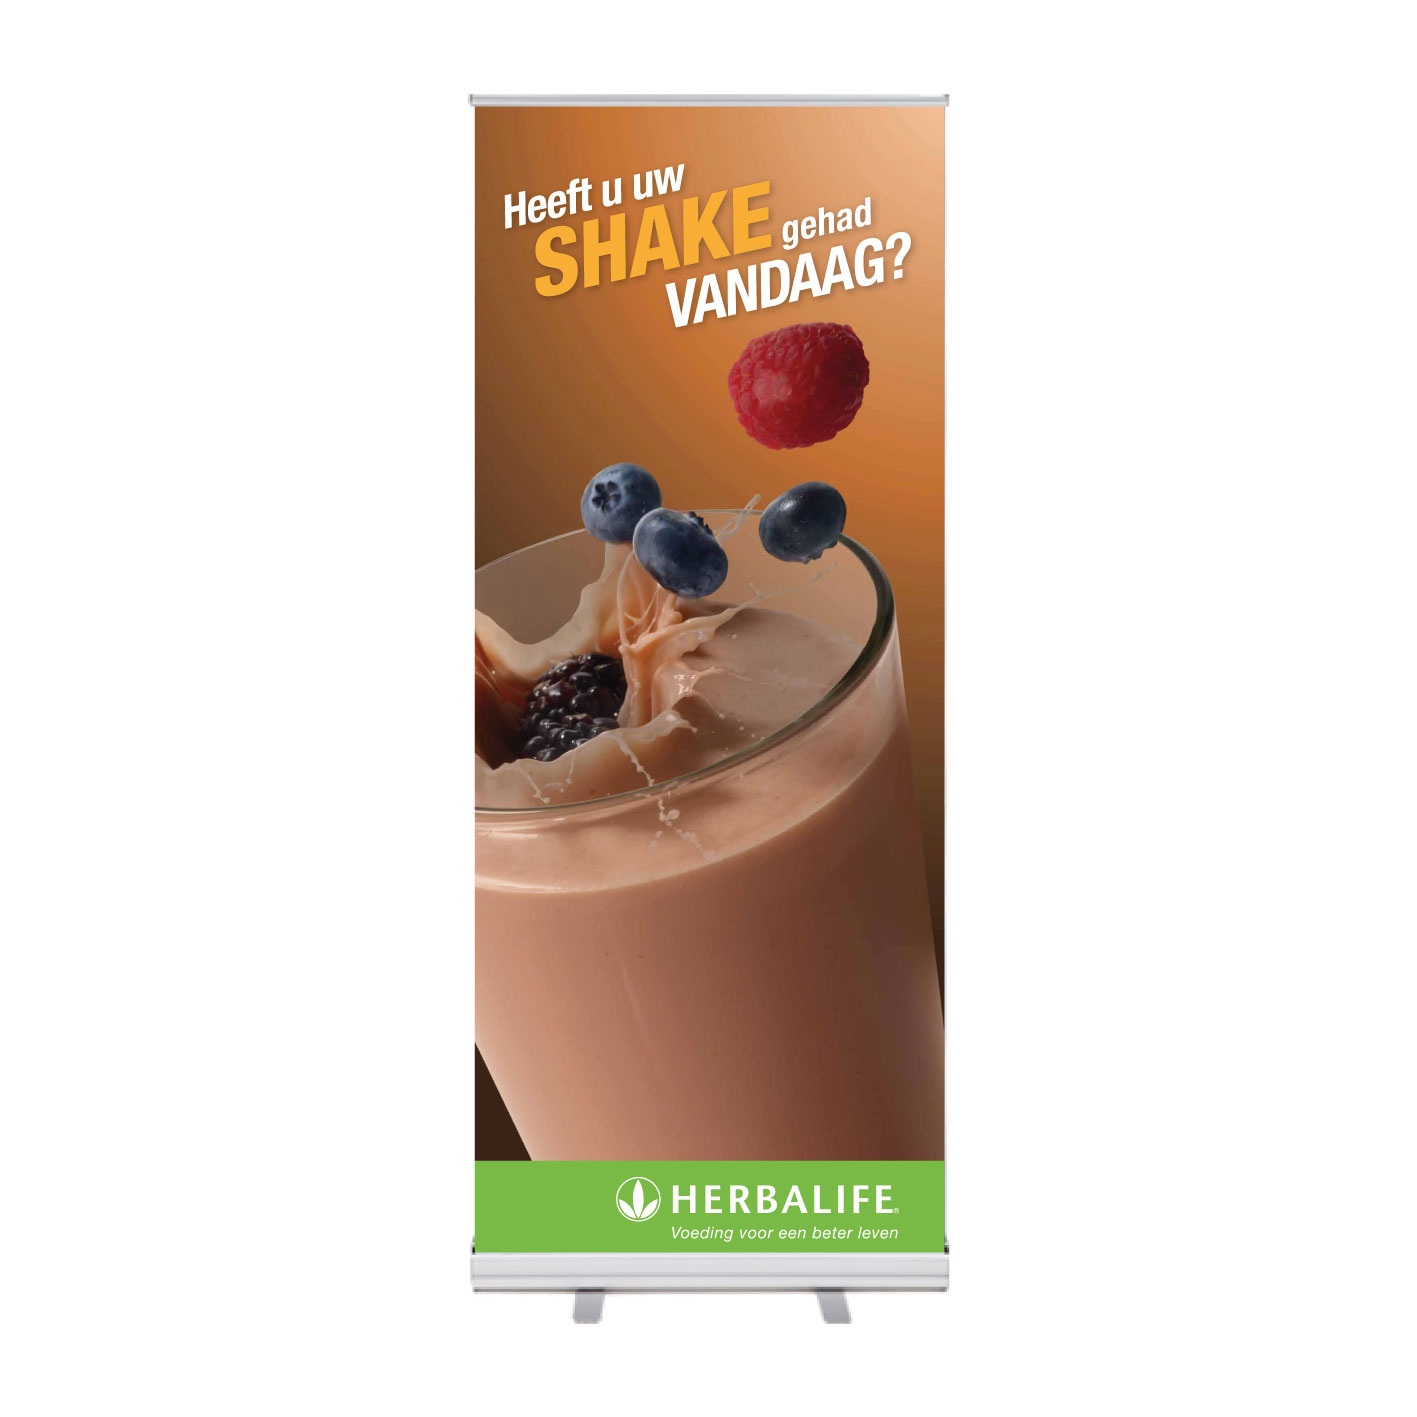 https://myshop.s3-external-3.amazonaws.com/shop4547200.pictures.Roll-Up-Herbalife-Shake-Bosvruchten.jpg